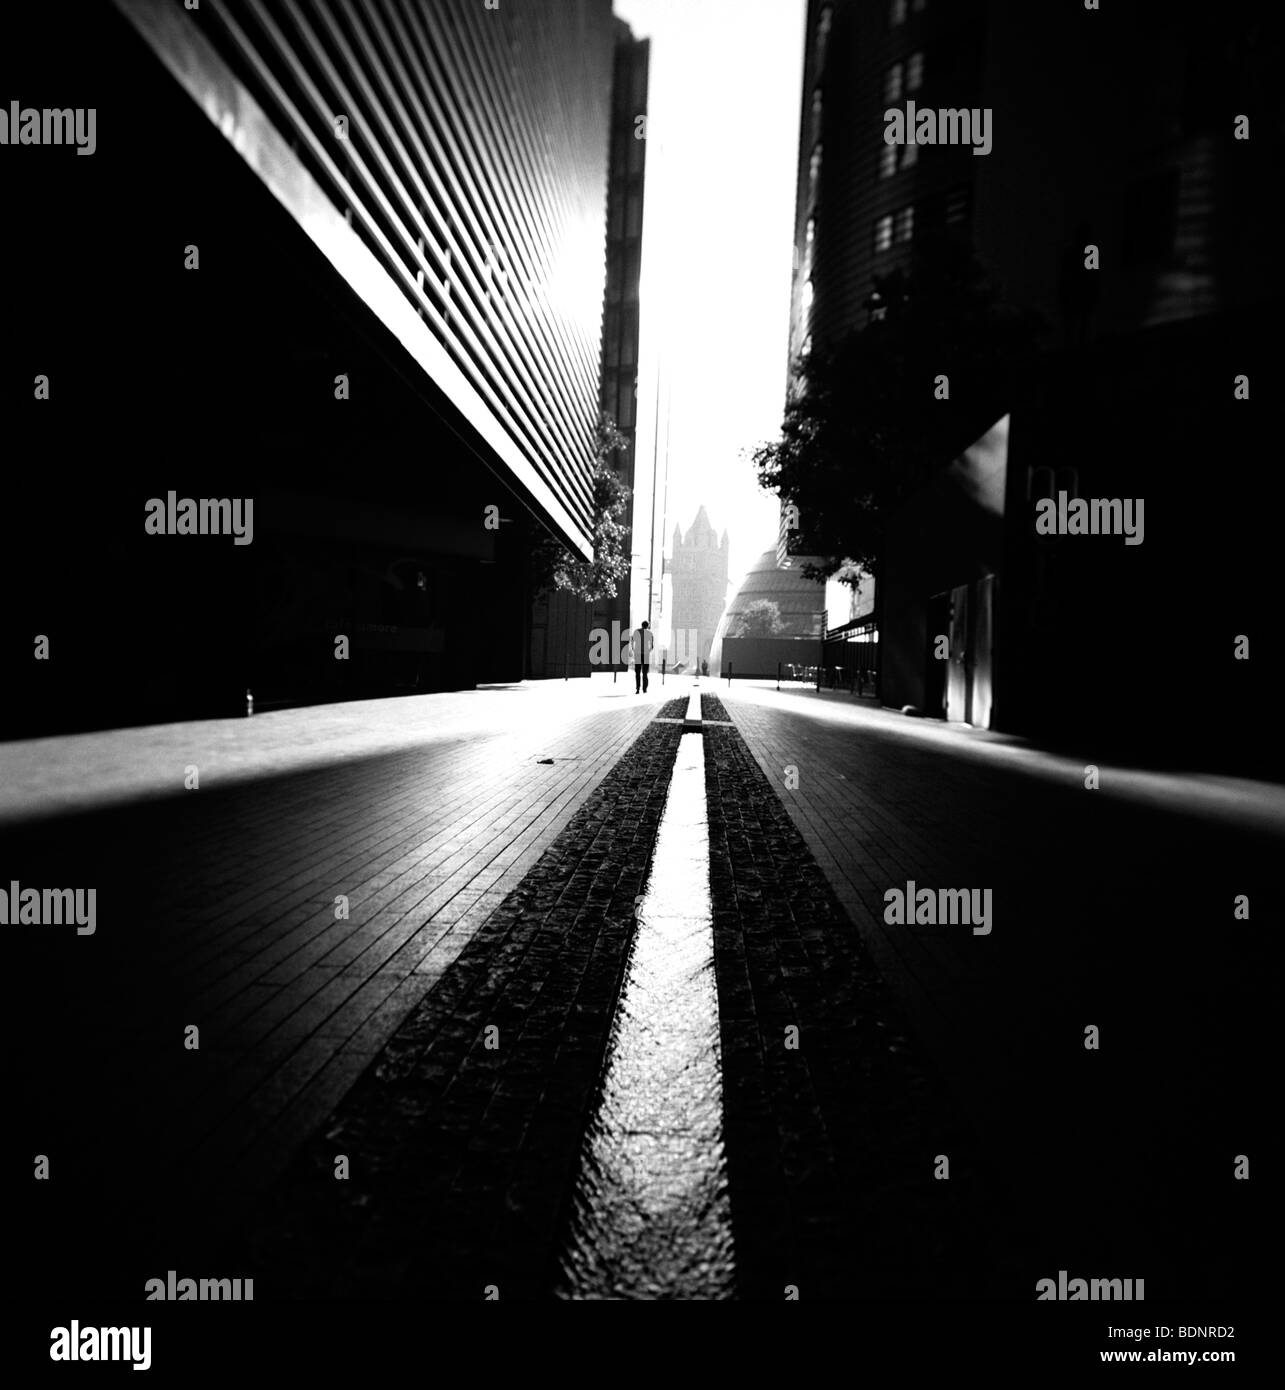 La figure solitaire marchant le long de la rue sombre avec de grands bâtiments London England Photo Stock